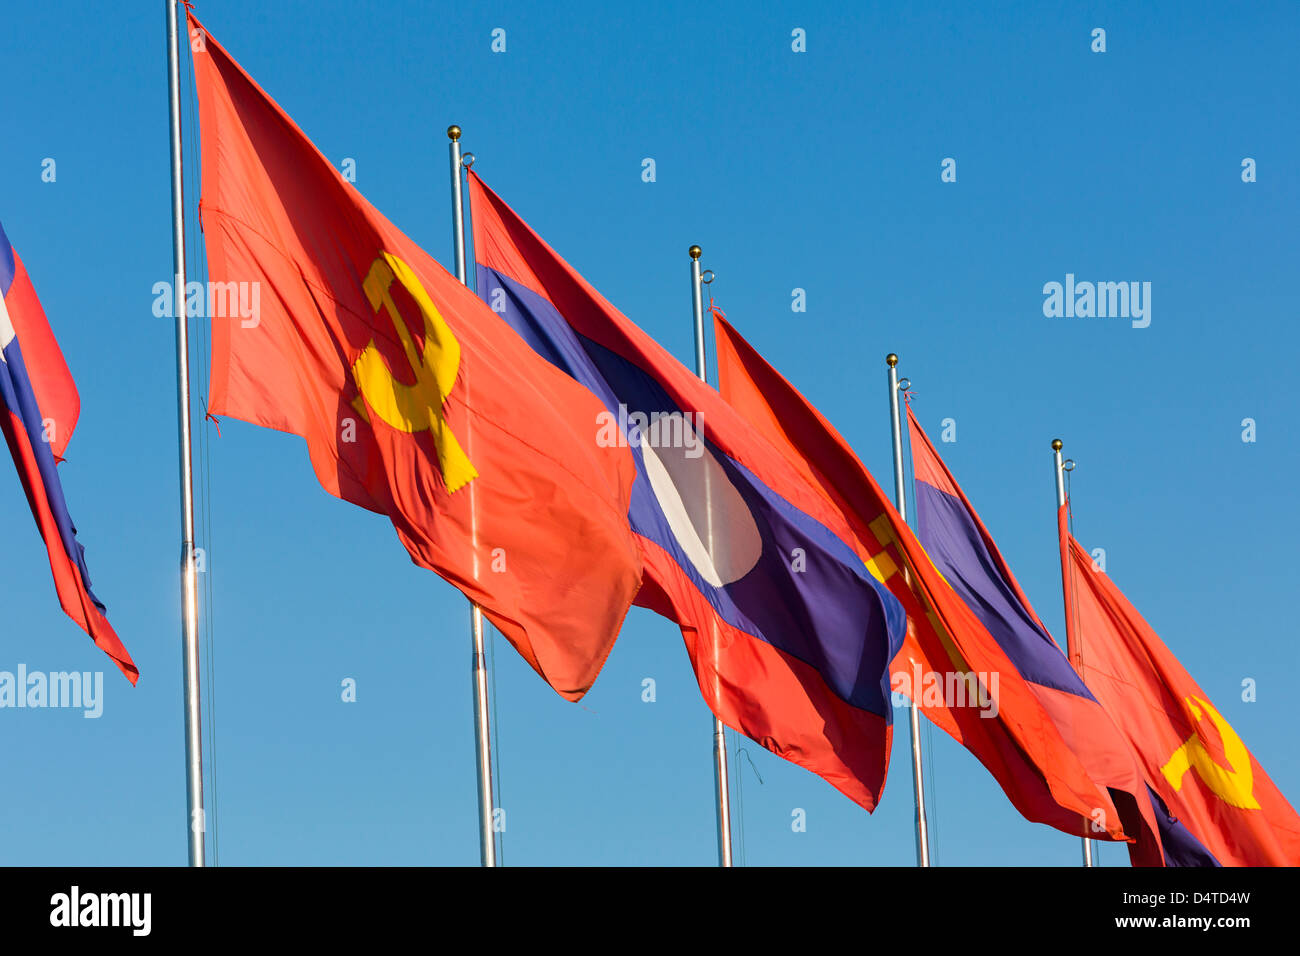 Laotian and communist flags in Vientiane, Laos - Stock Image